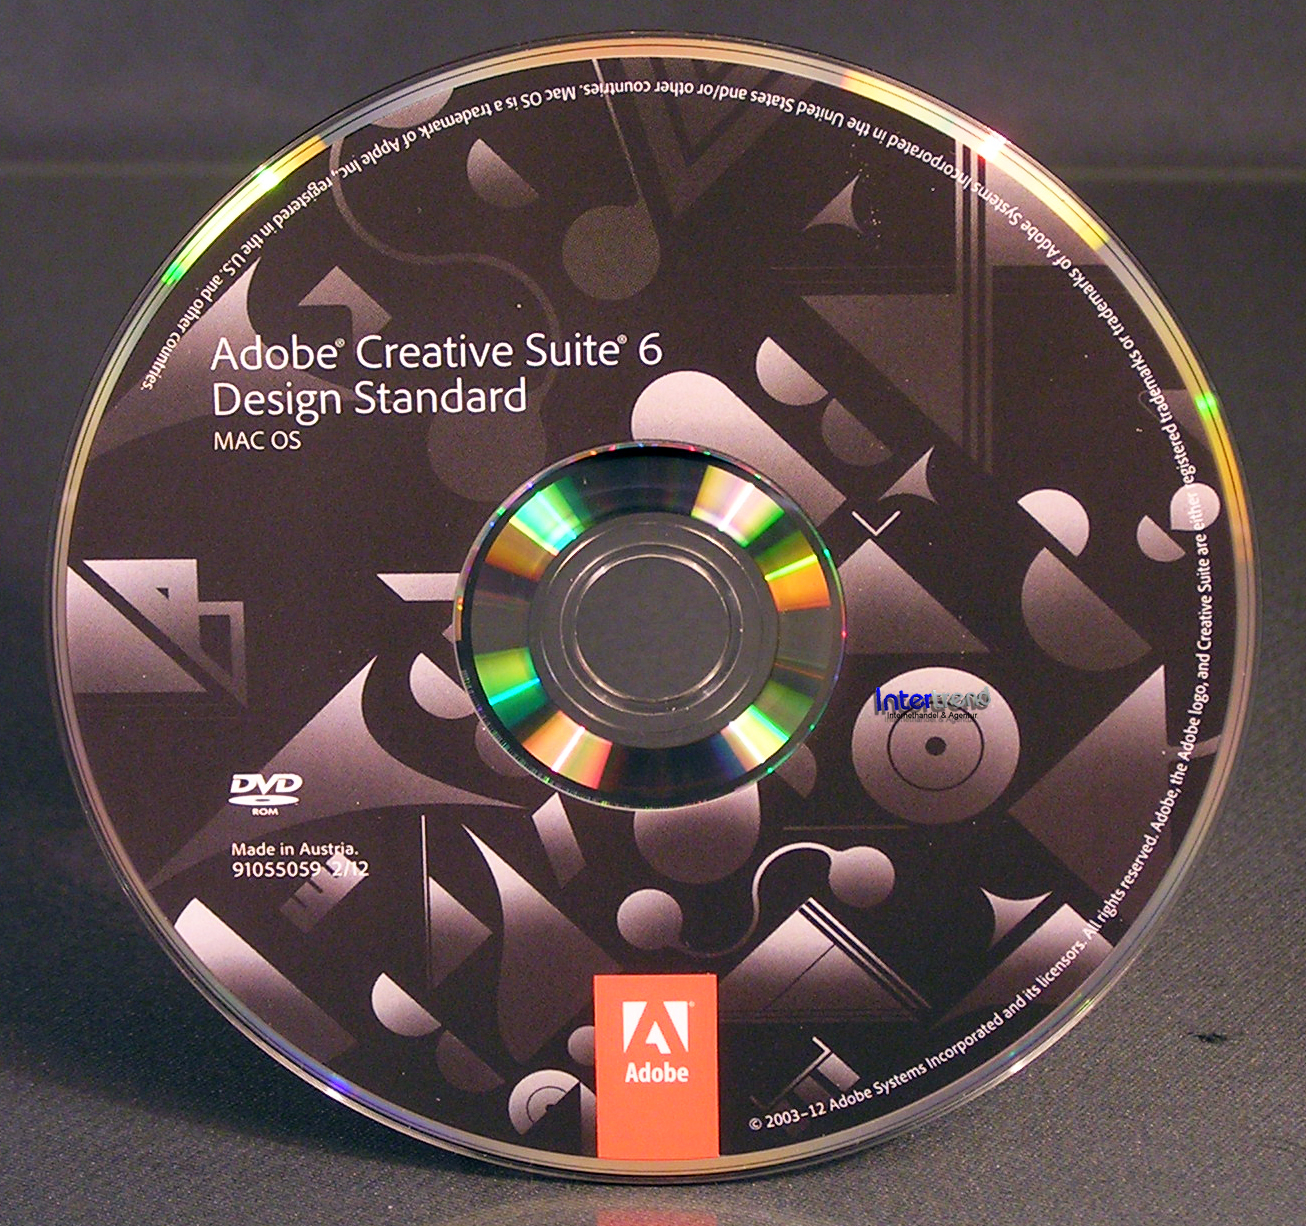 Adobe Creative Suite CS6 Design Standard Features - YouTube